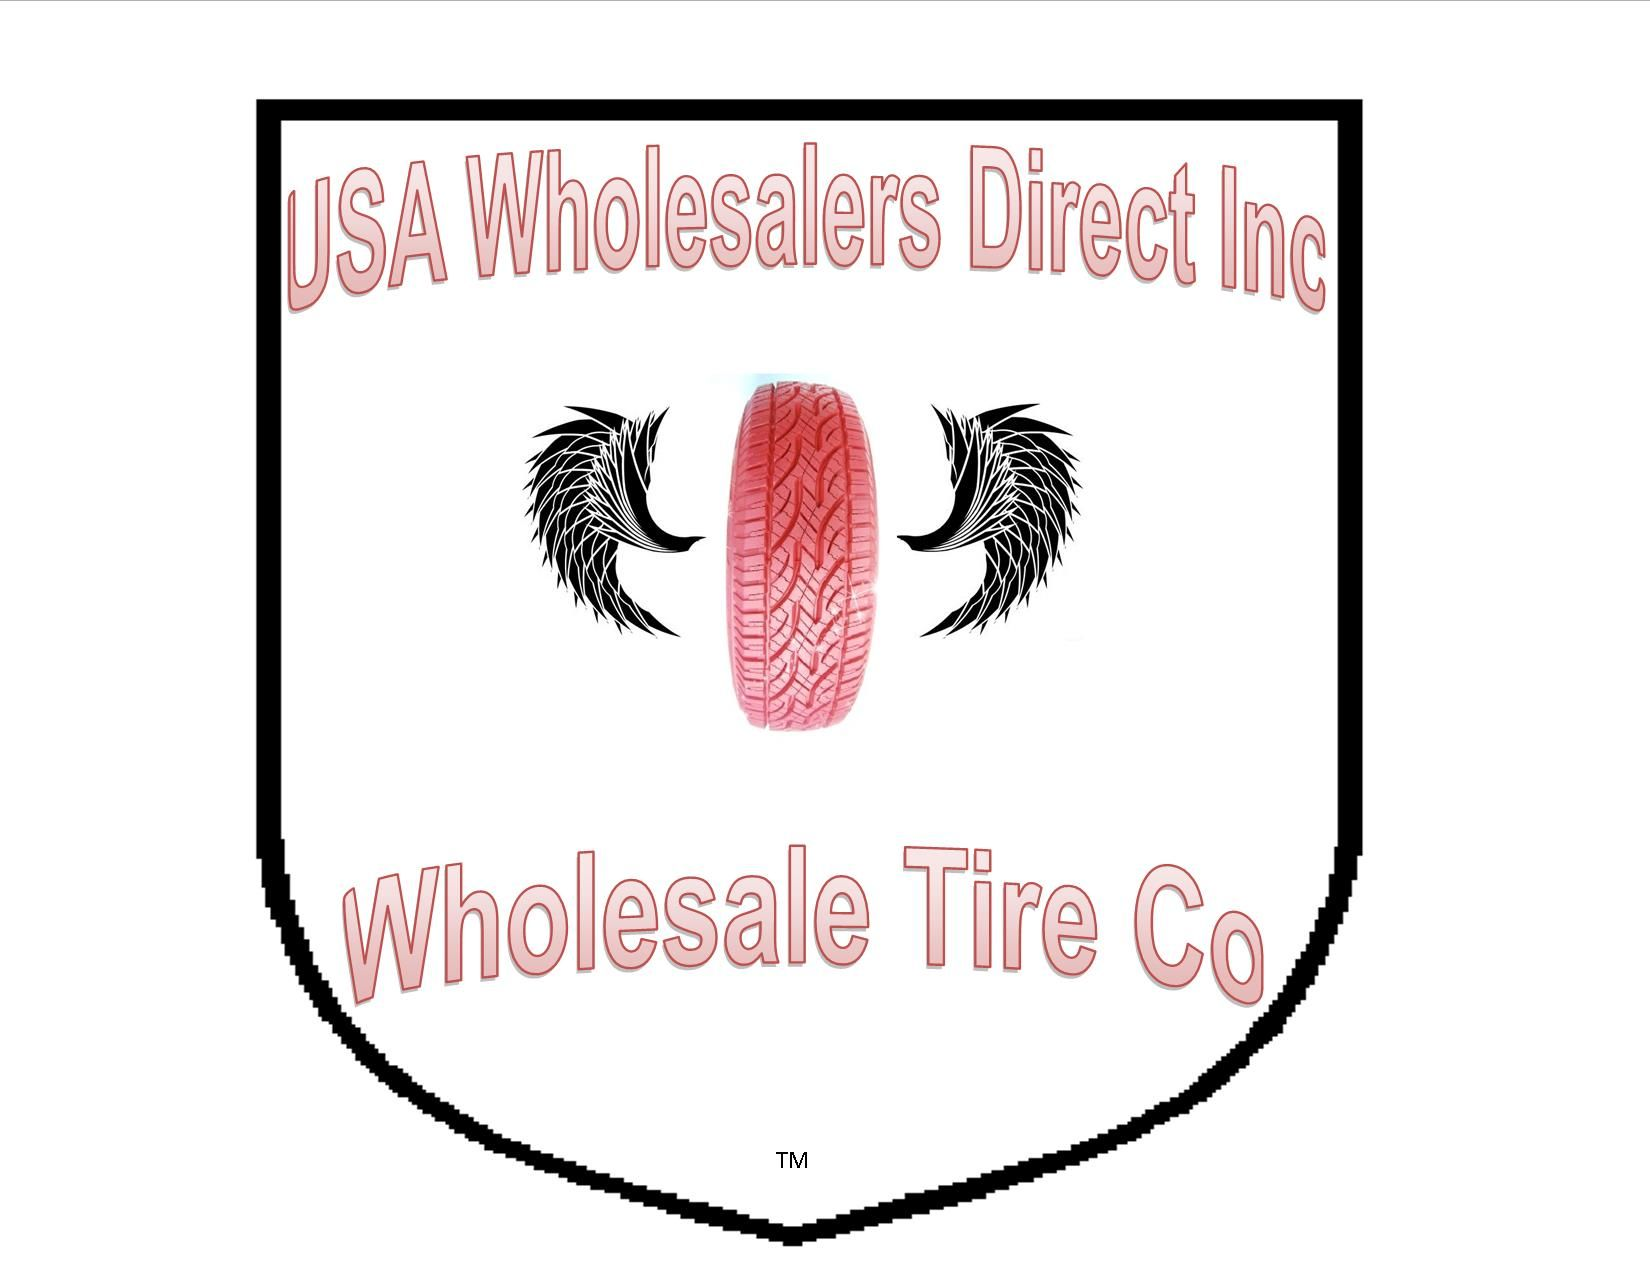 I would like to introduce myself and my company to you and your business. I am a global wholesaler and distributor and contractor & manufacturer.